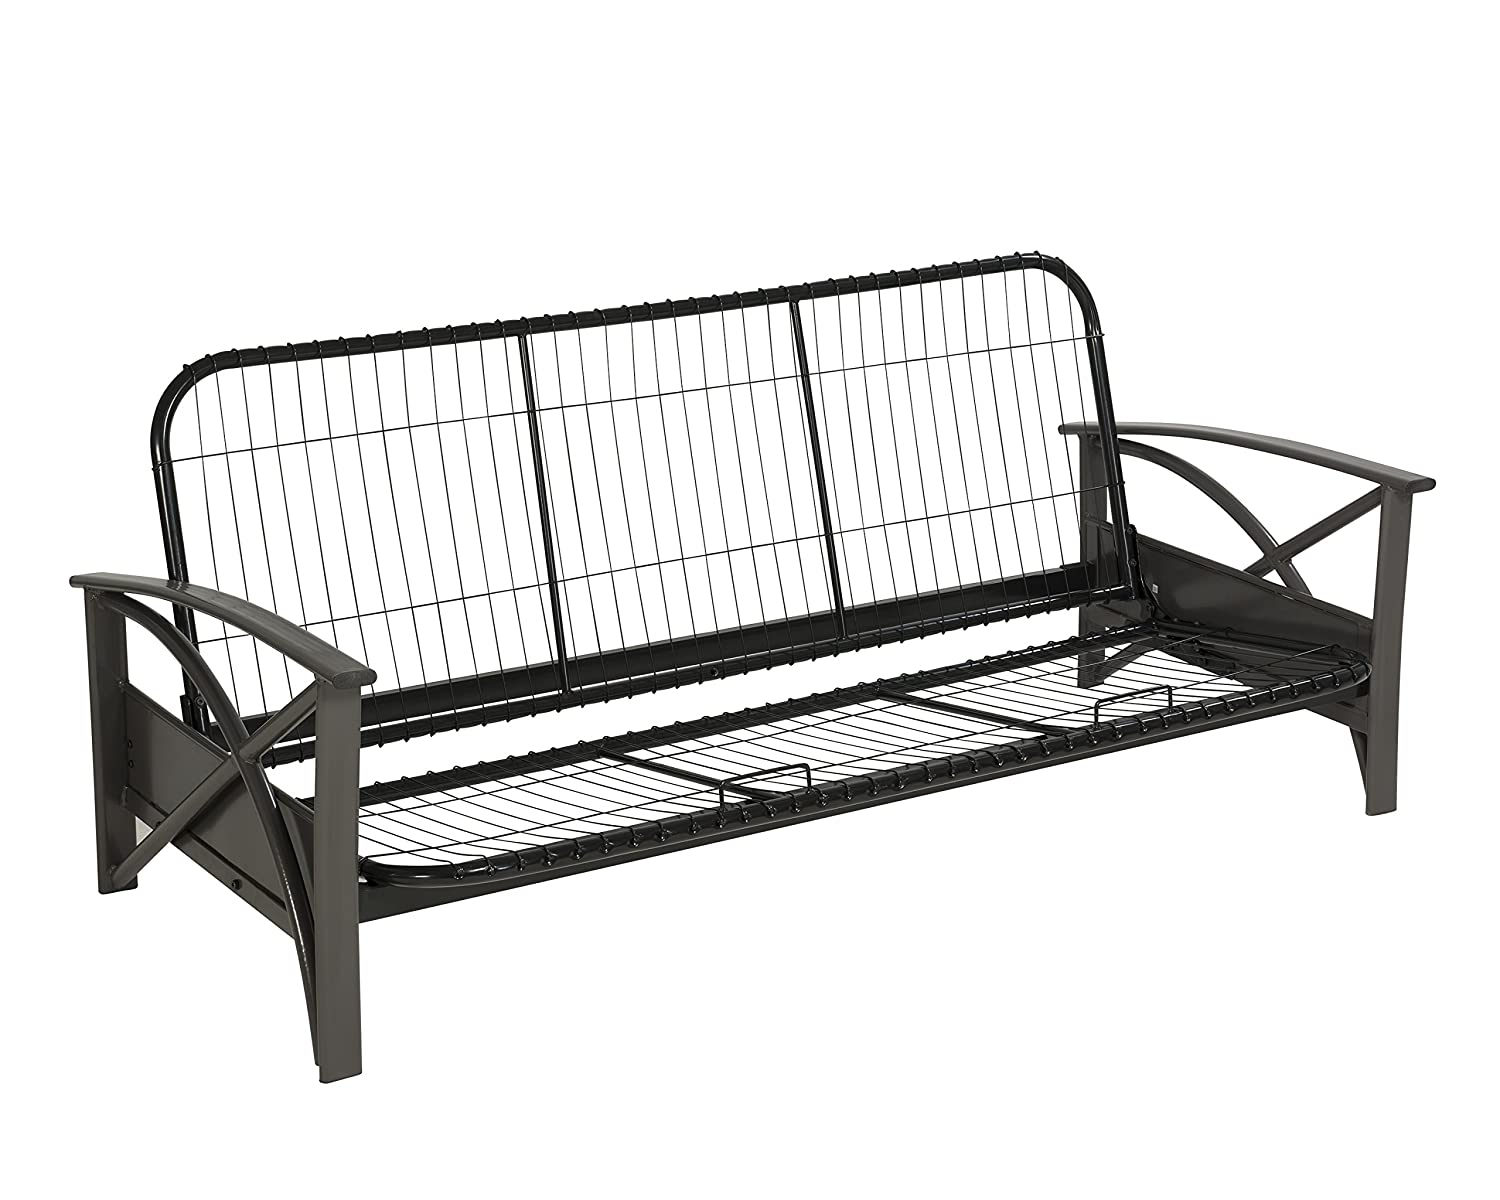 WOLF Brussels Futon Frame, Queen, Gun Metal Grey Wolf Corporation FF038/FF002